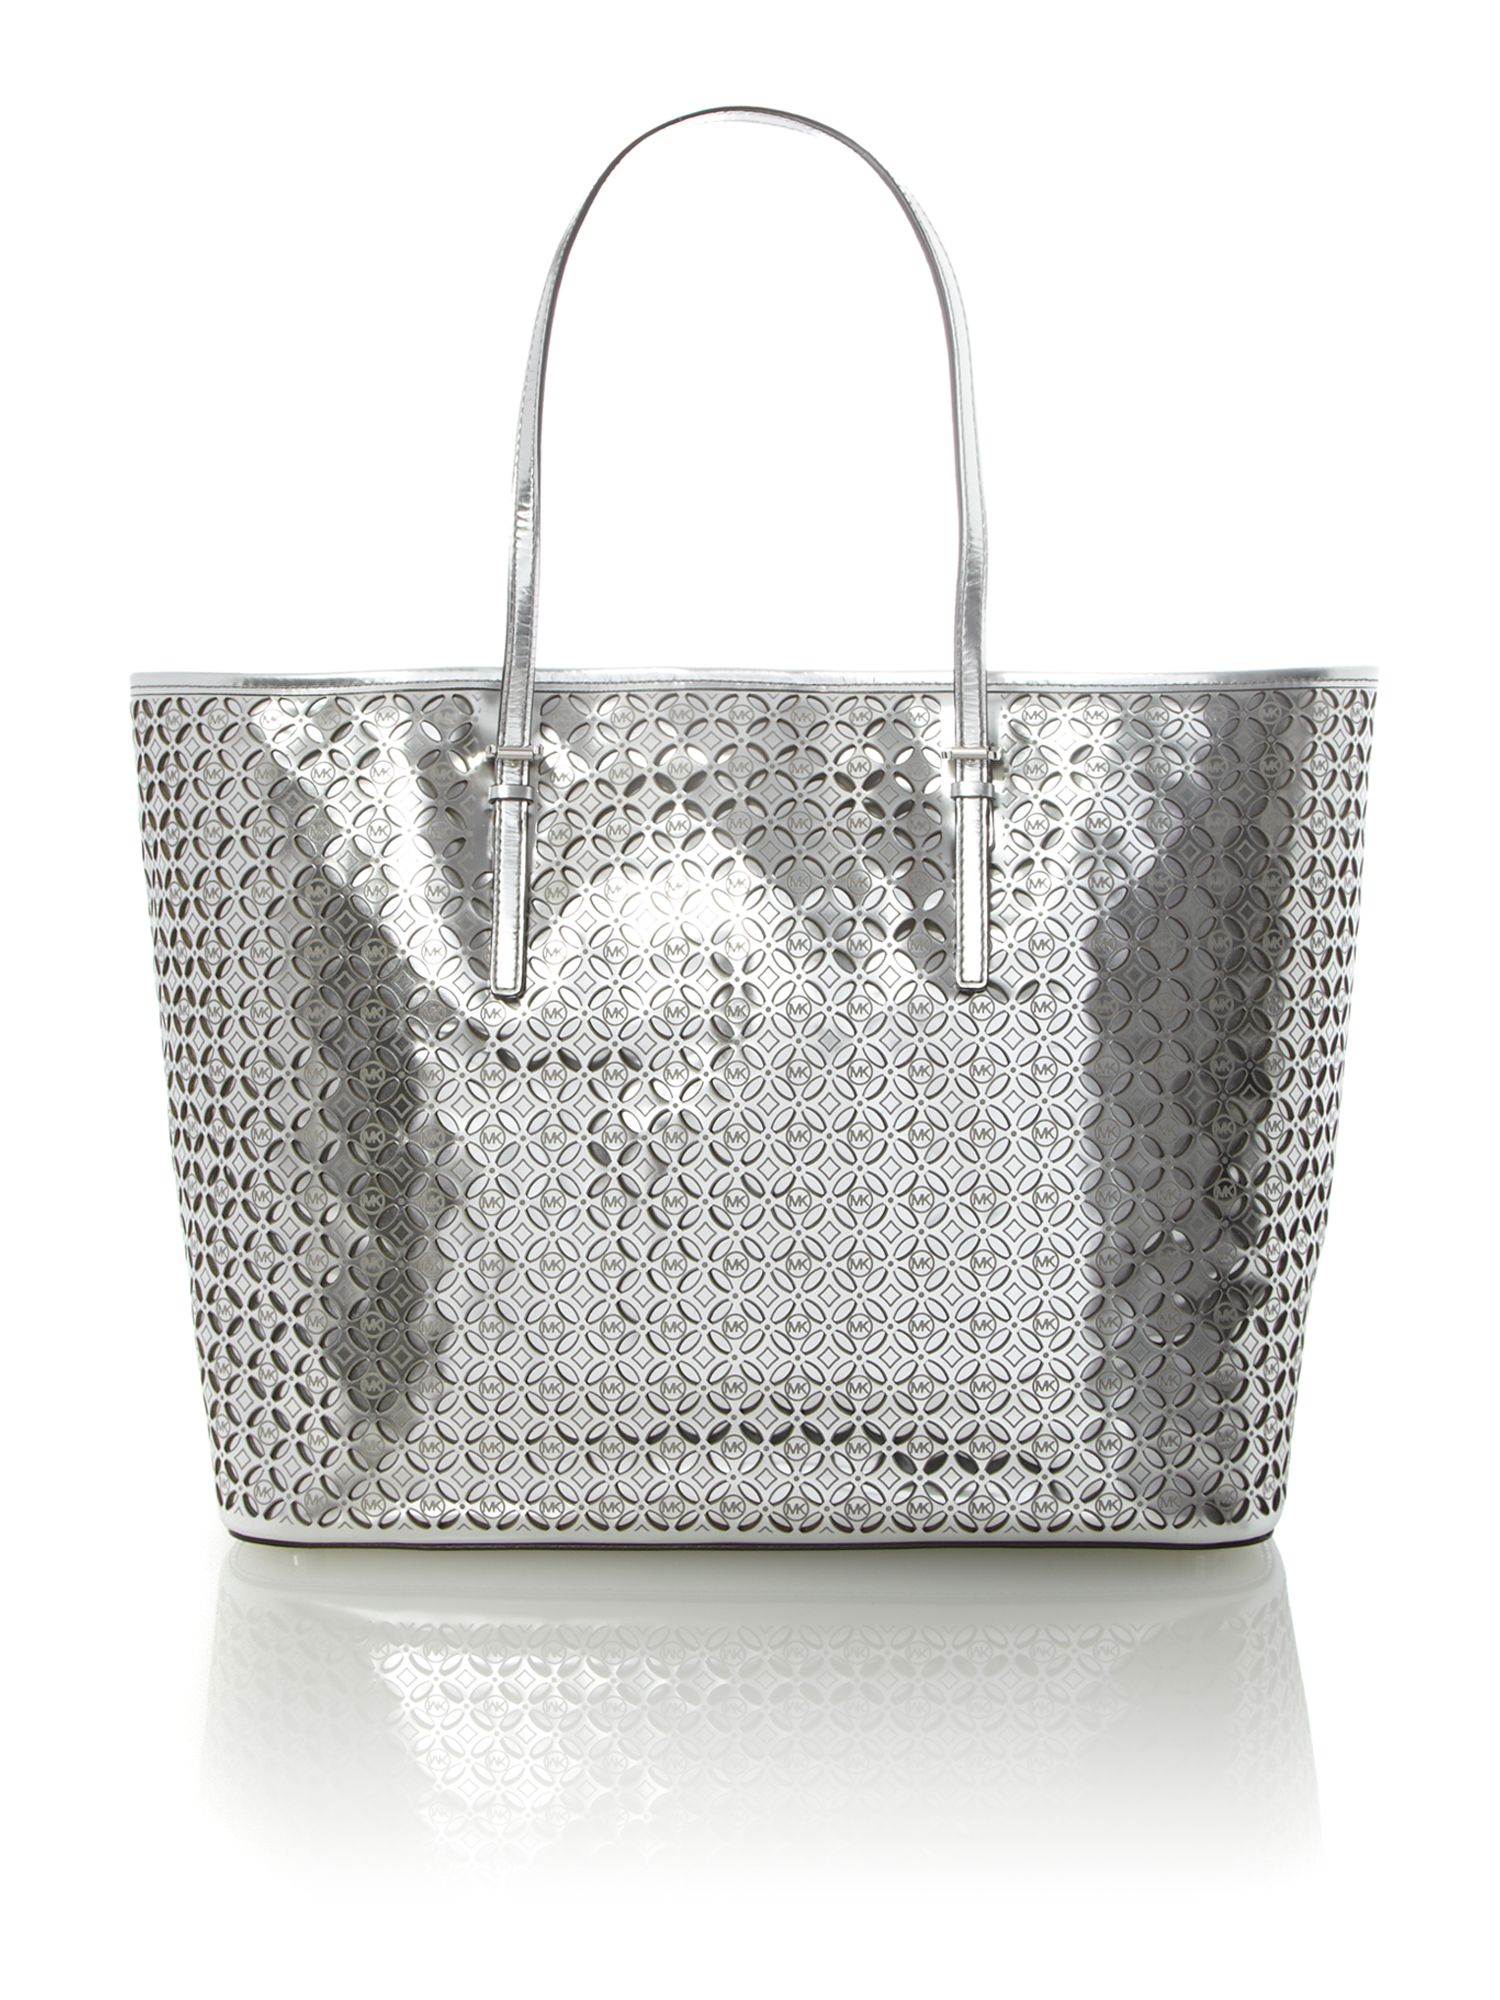 Flower perforated silver small tote bag